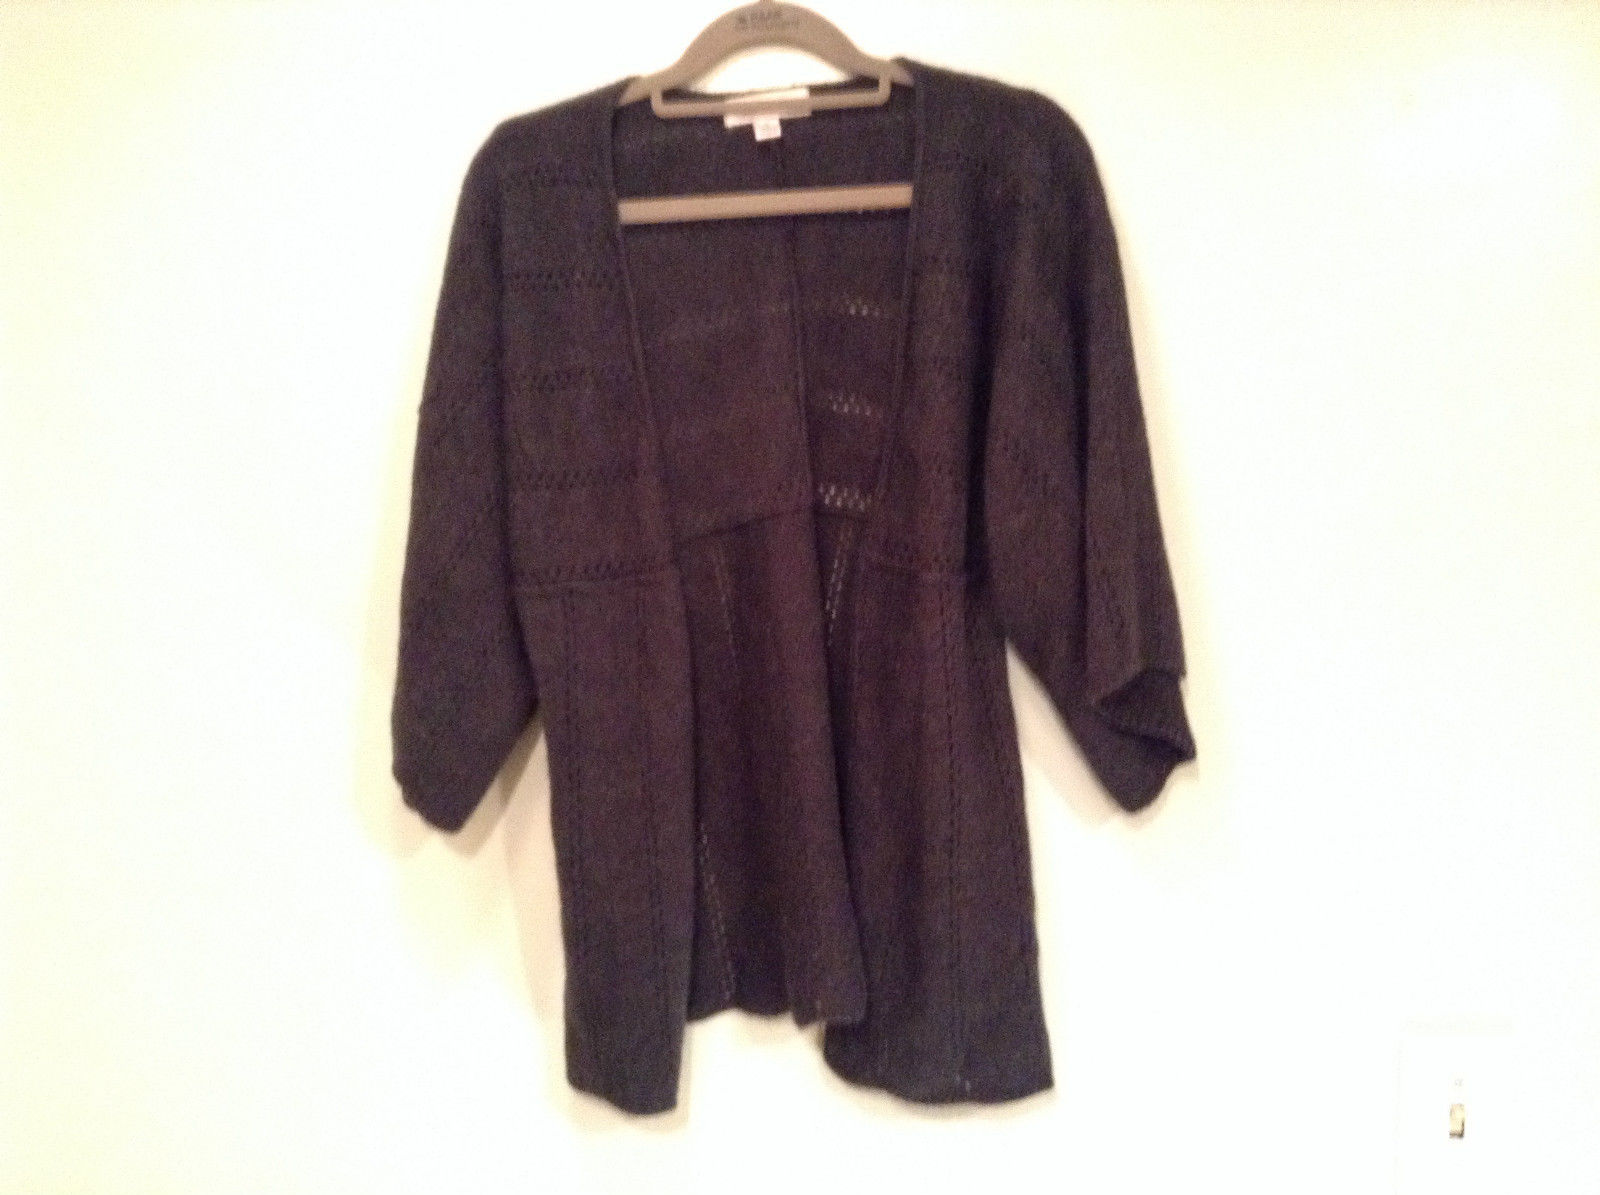 Xhilaration Size Medium Charcoal 100 Percent Acrylic Cardigan Sweater